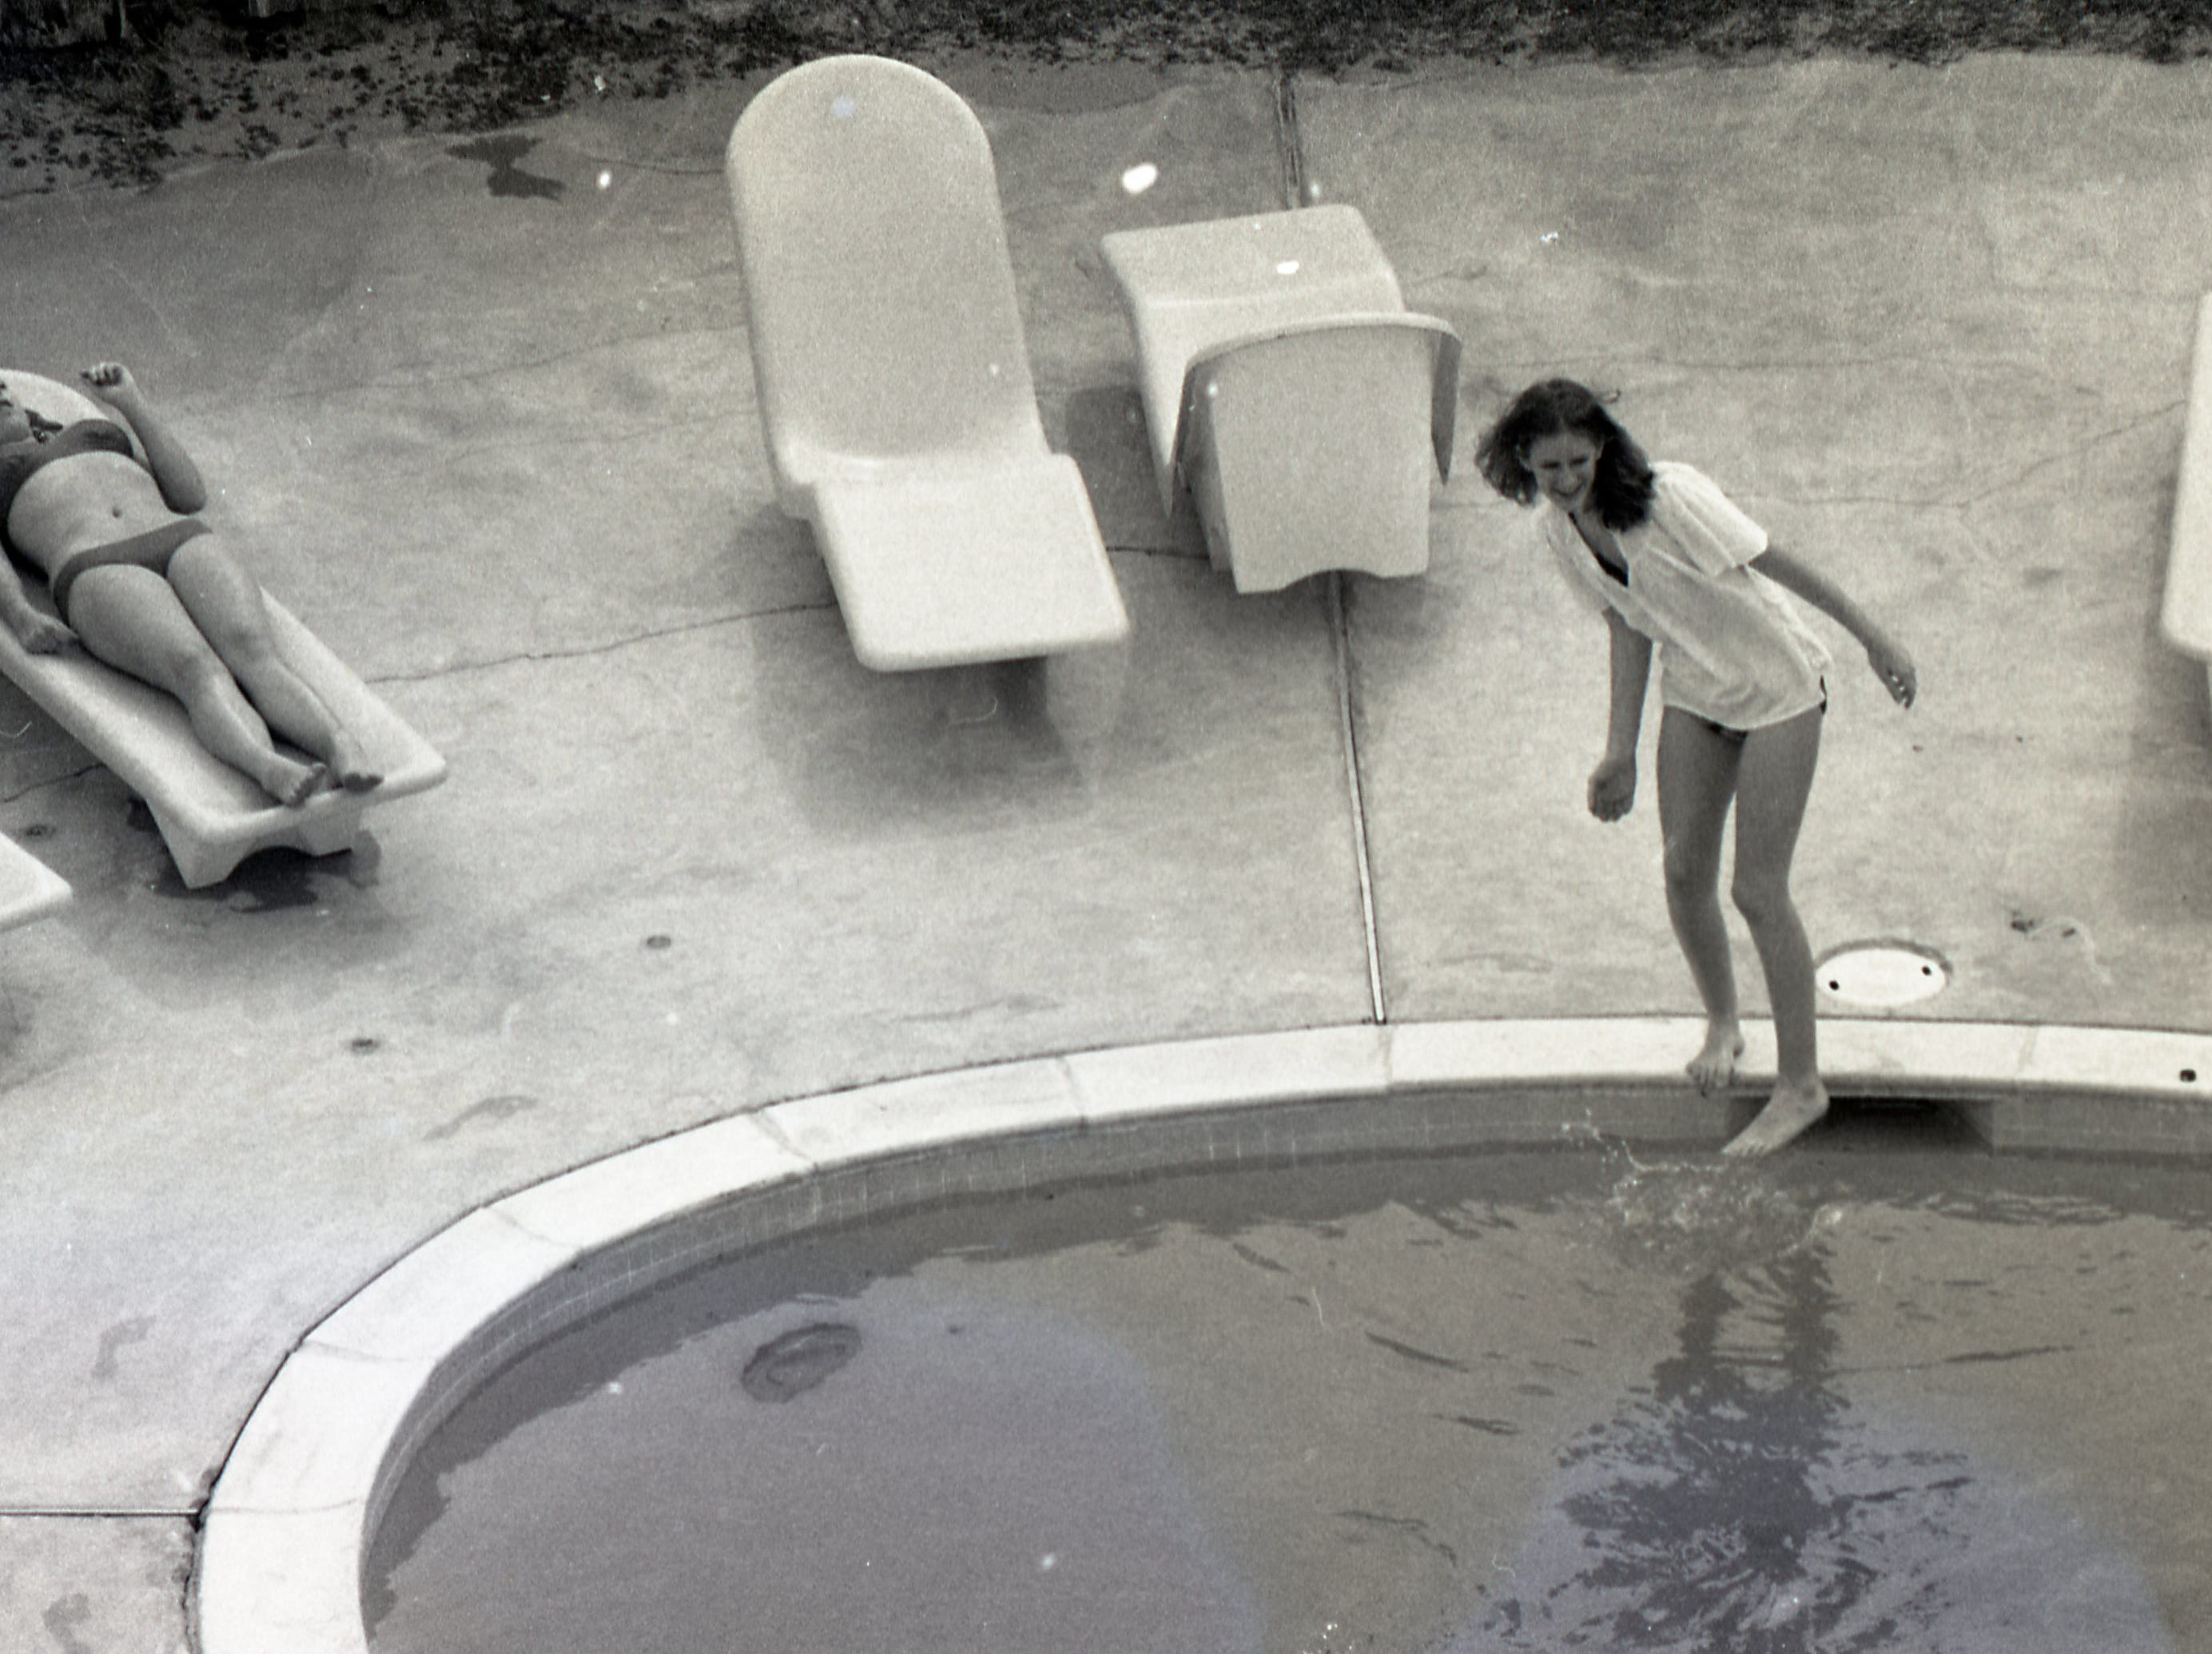 Testing the pool waters during spring break on Padre Island on March 17, 1979.